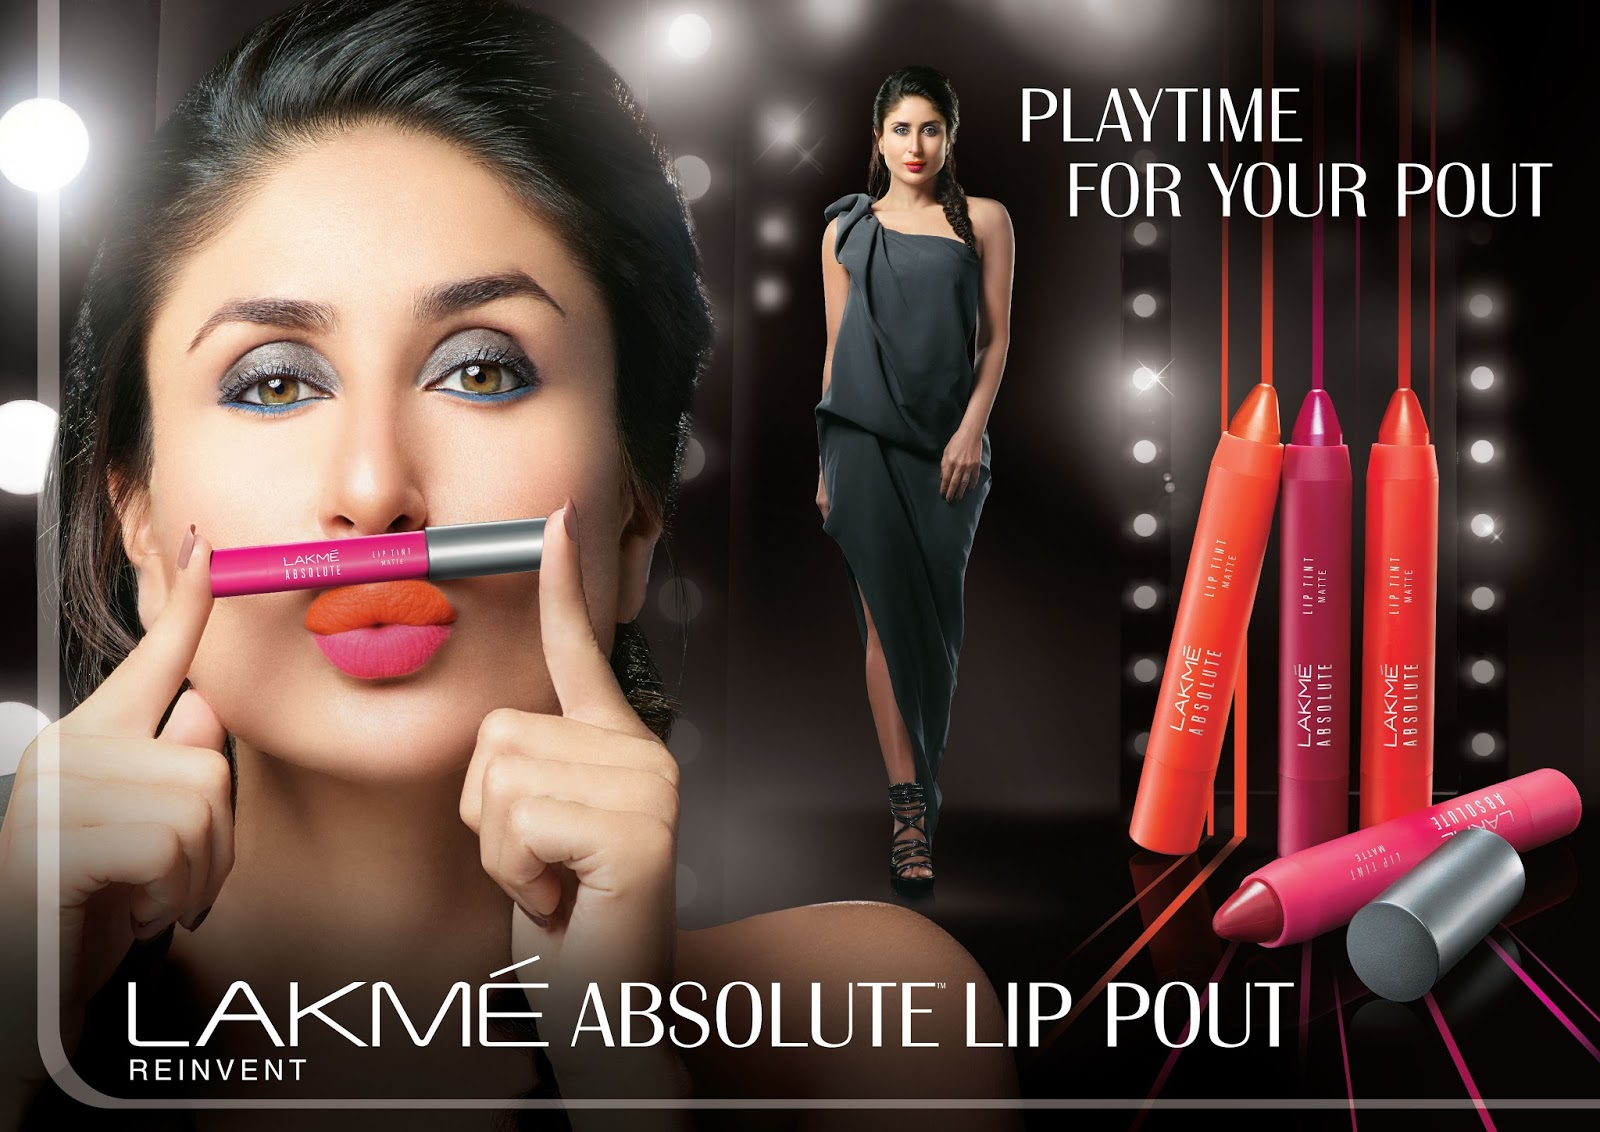 lakme absolute lip pout shades online india and price, indian beauty and makeup blog, makeup and beauty blog, beauty frontline, chennai blogger, beauty blogger india, makeup blogger india, fashion blogger india, health and lifestyle blog, acne and oily skincare